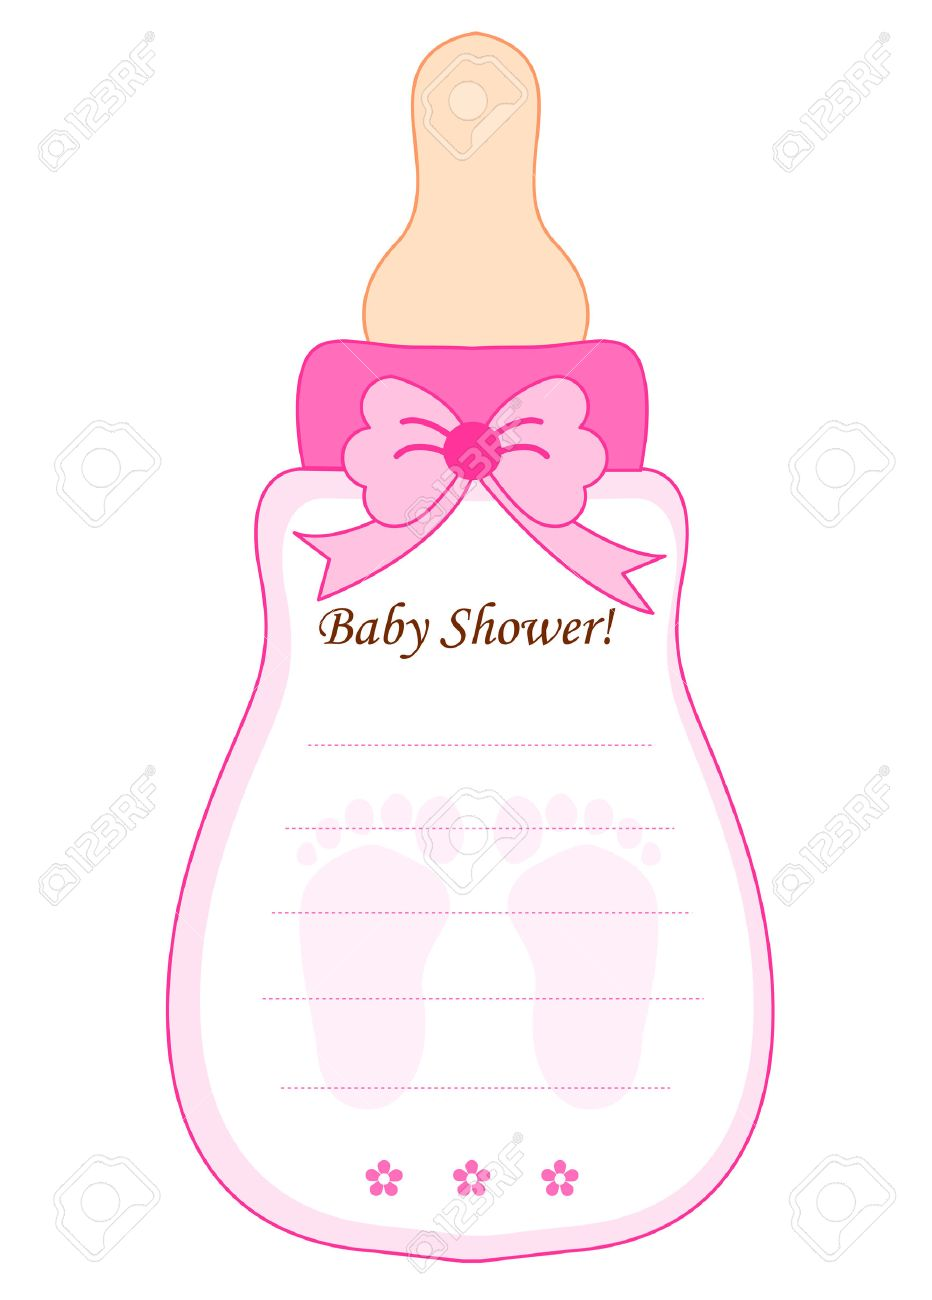 Cute Feeding Bottle Shaped Baby Shower Invitation Card Template – Free Baby Shower Invitation Cards